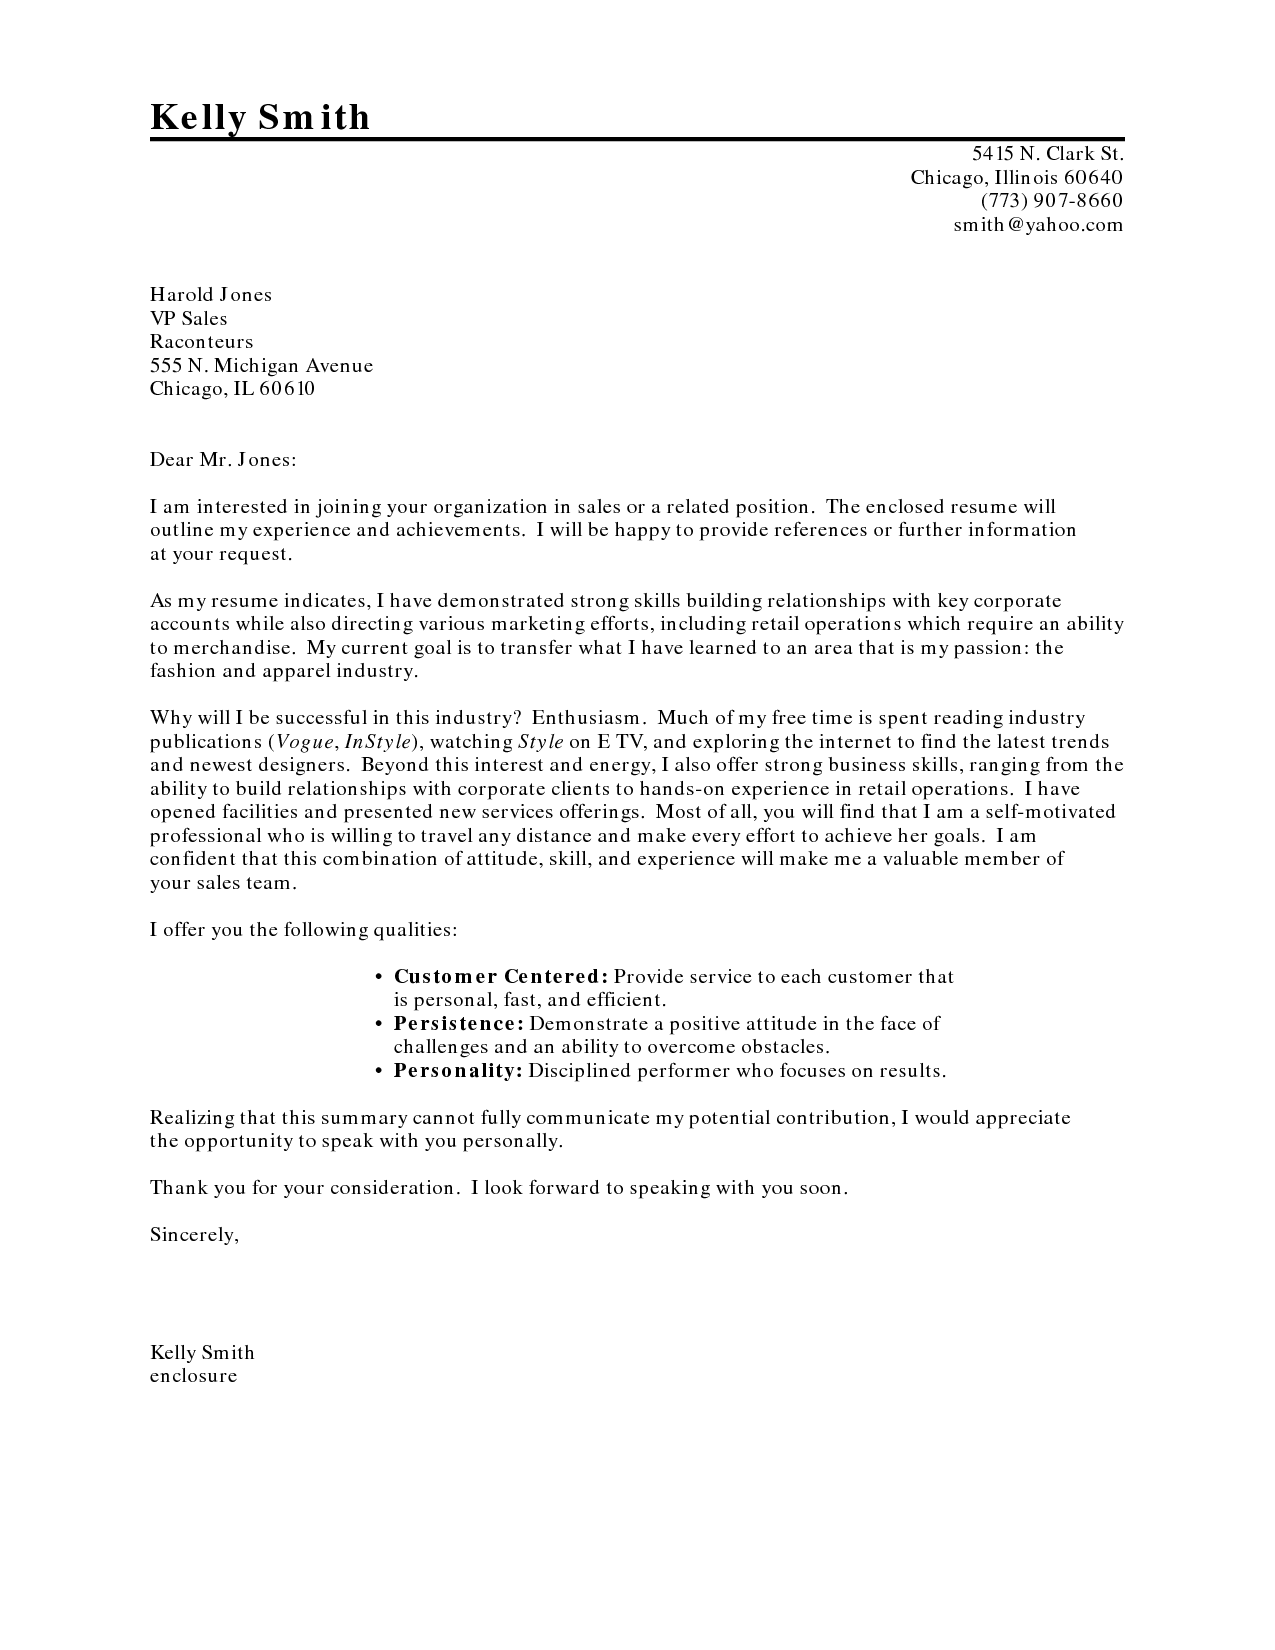 Career Change Cover LetterSimple Cover Letter Application Letter Sample  Cover Letter For Application